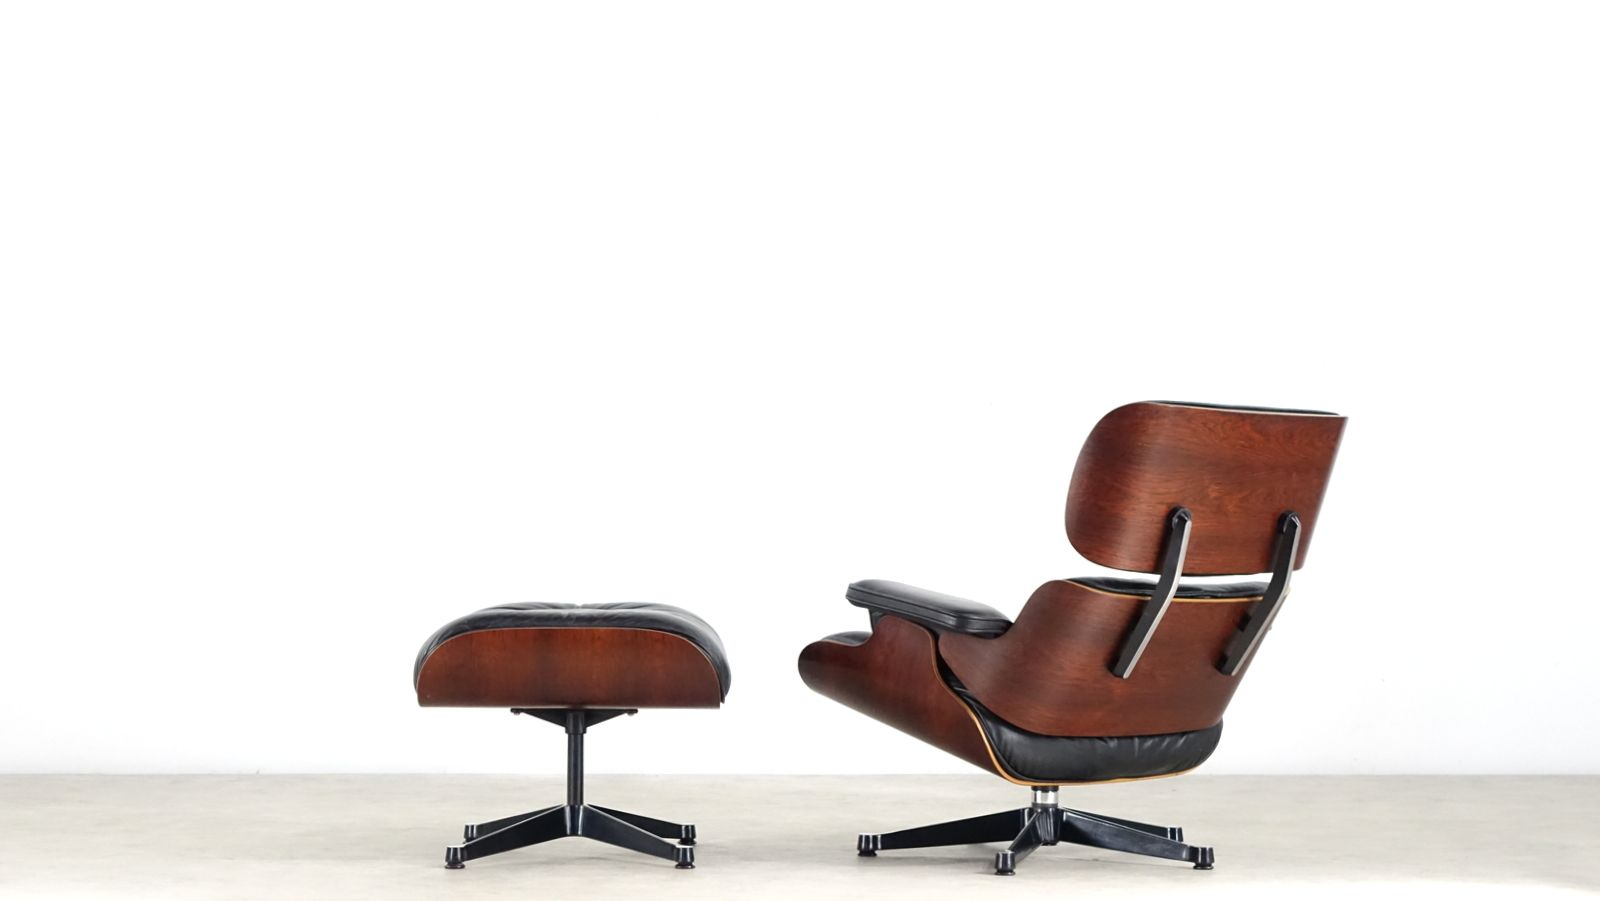 eames sessel und ottomane von charles ray eames f r herman miller bei pamono kaufen. Black Bedroom Furniture Sets. Home Design Ideas